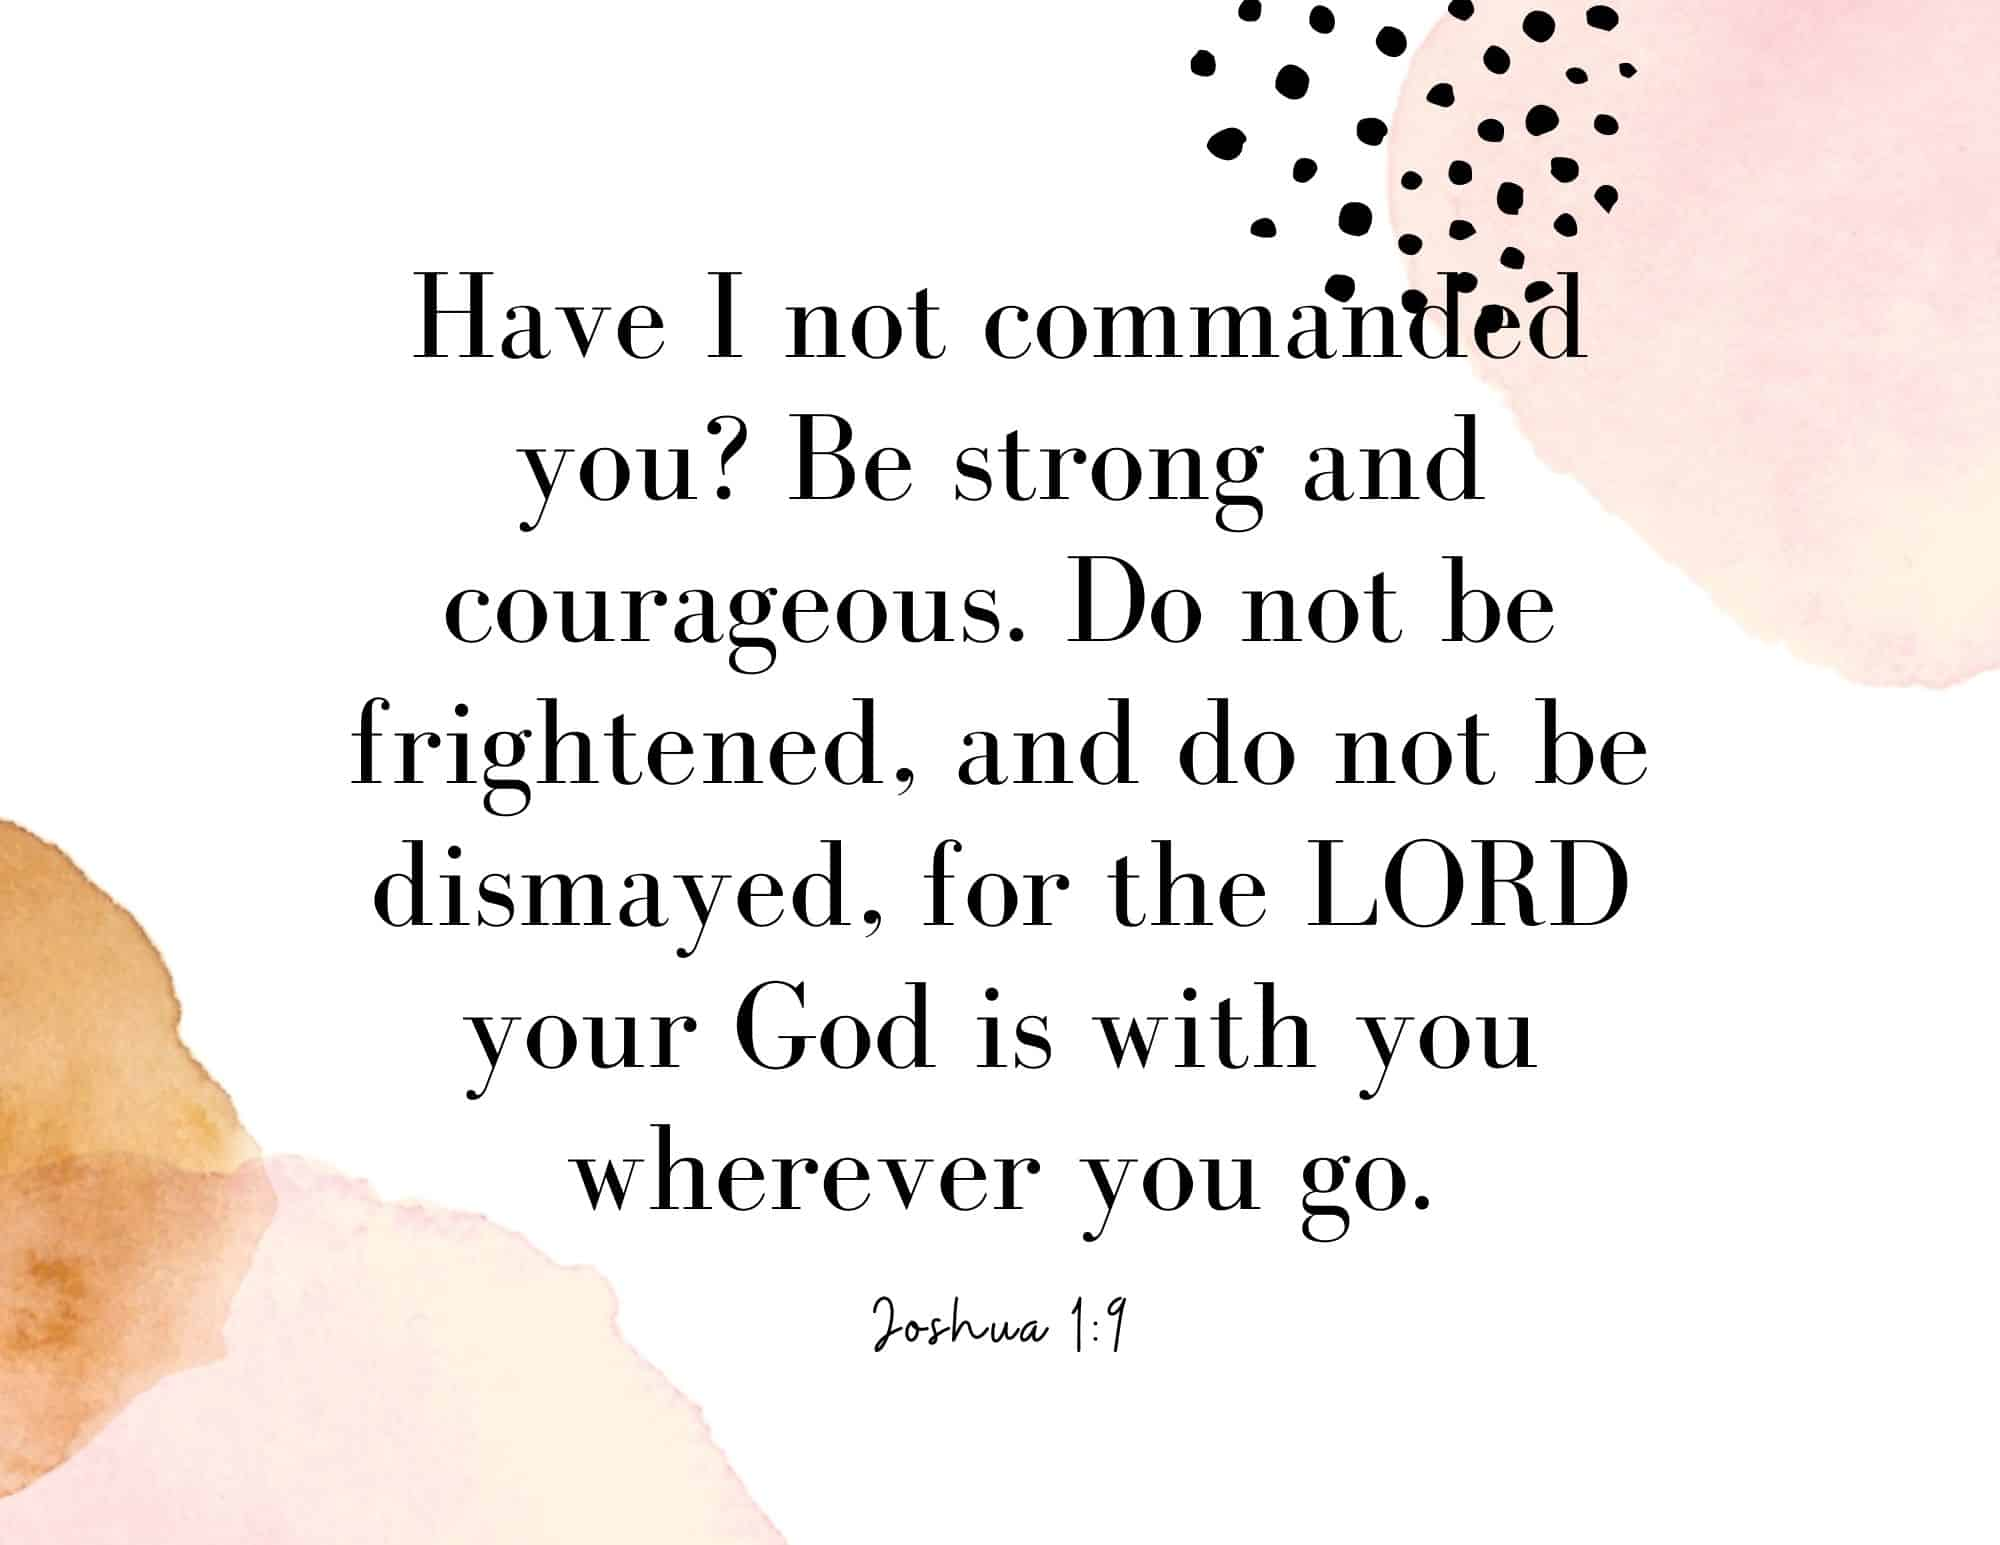 Be strong and courageous - bible verse on not giving up